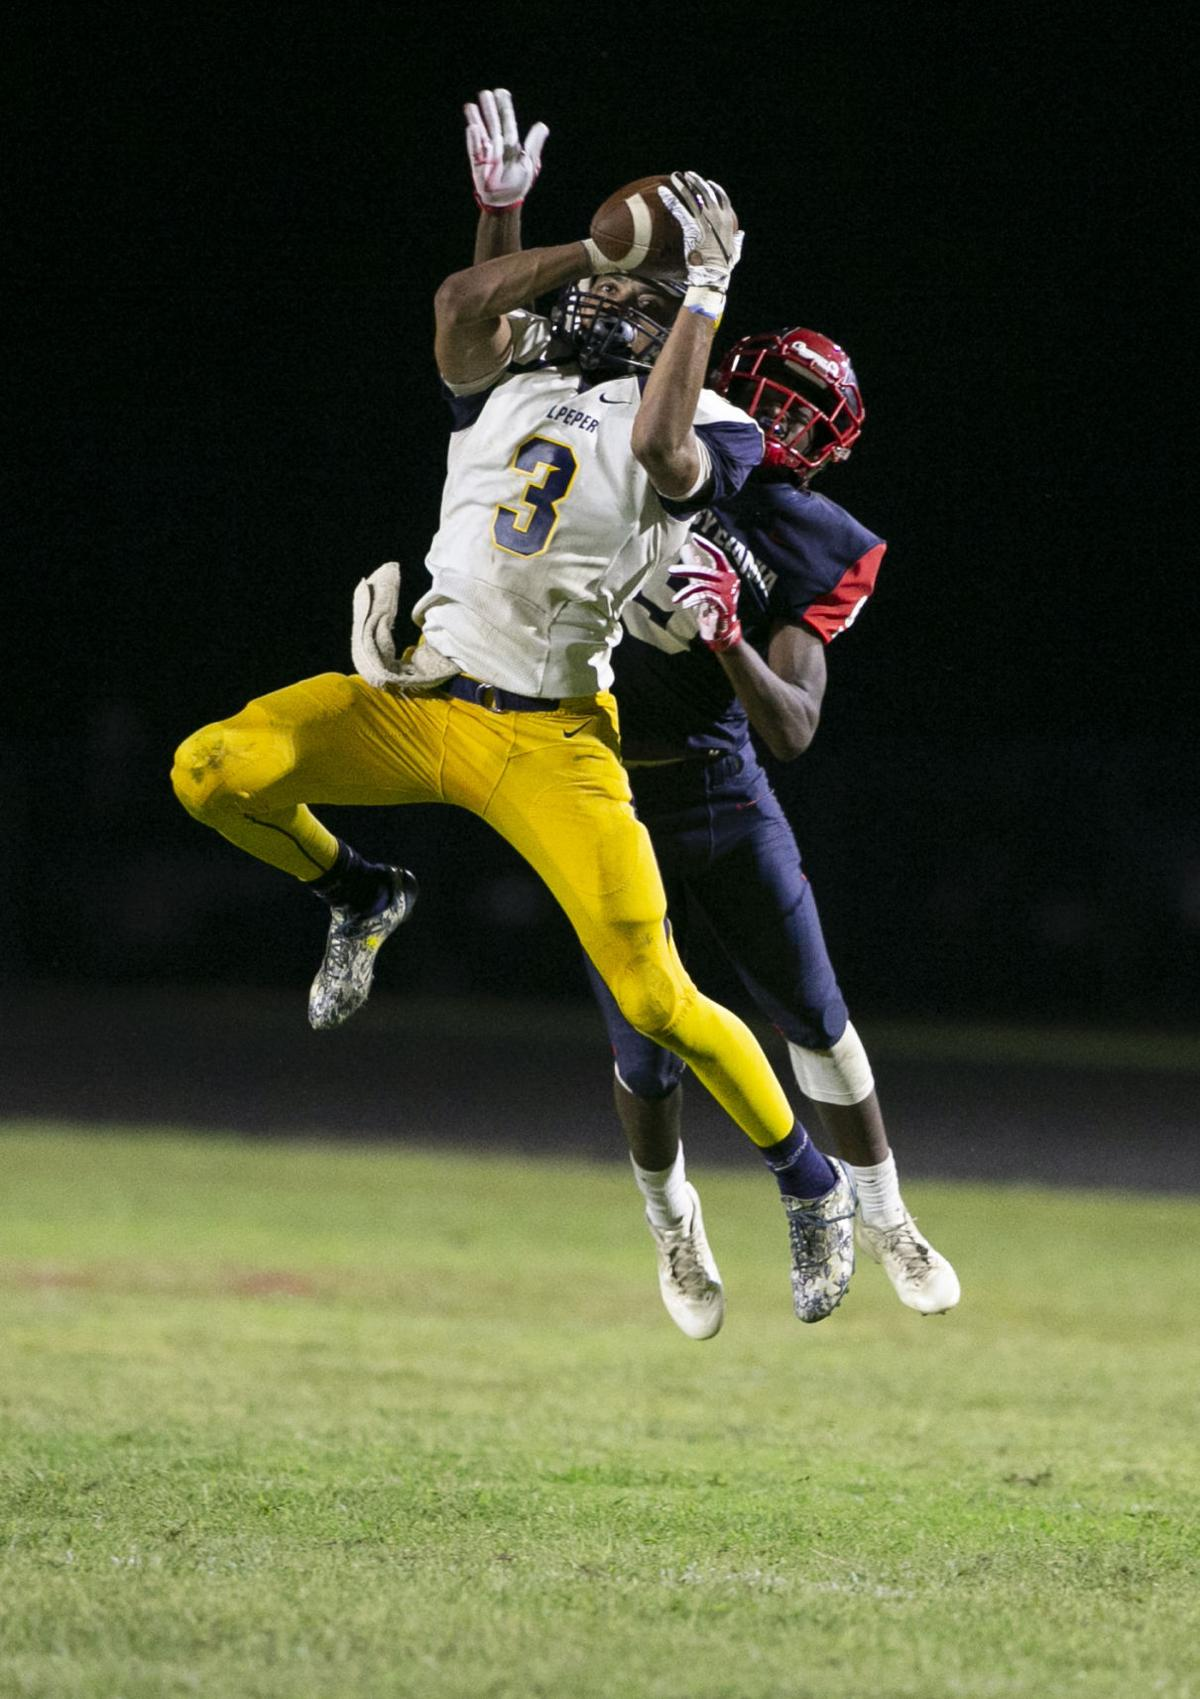 Spotsylvania vs Culpeper football (copy)